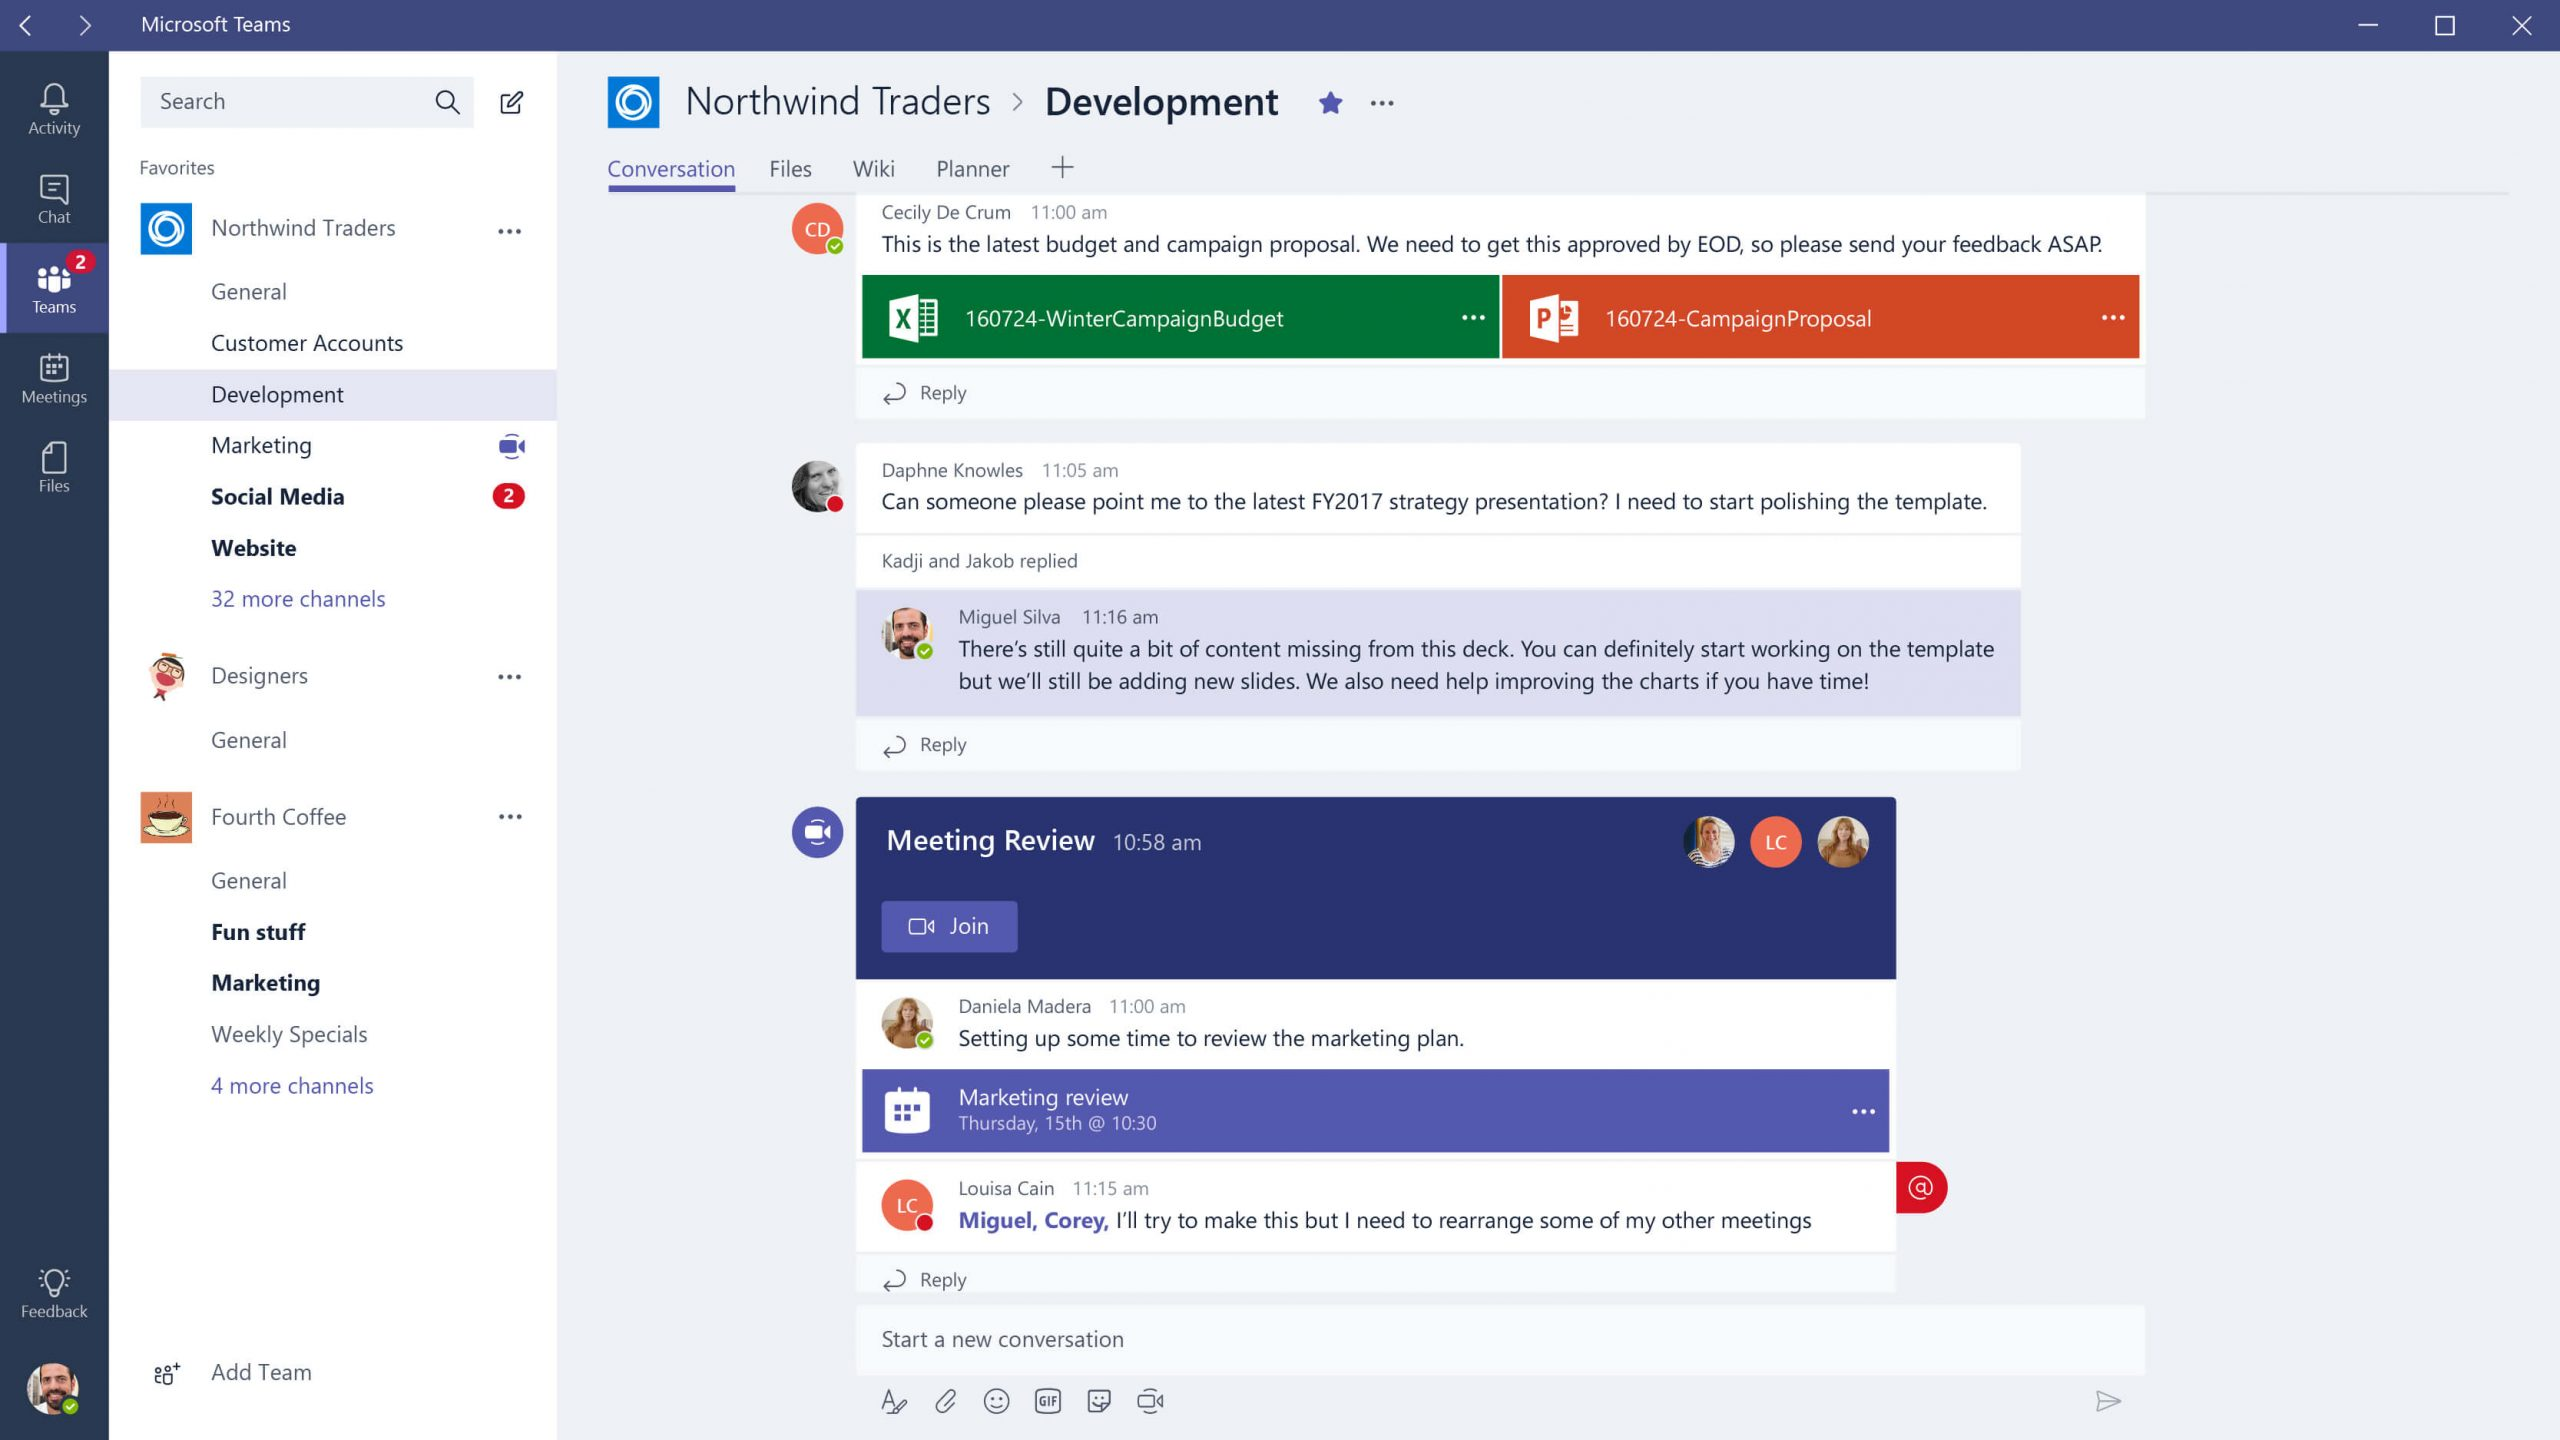 microsoft teams - chat apps